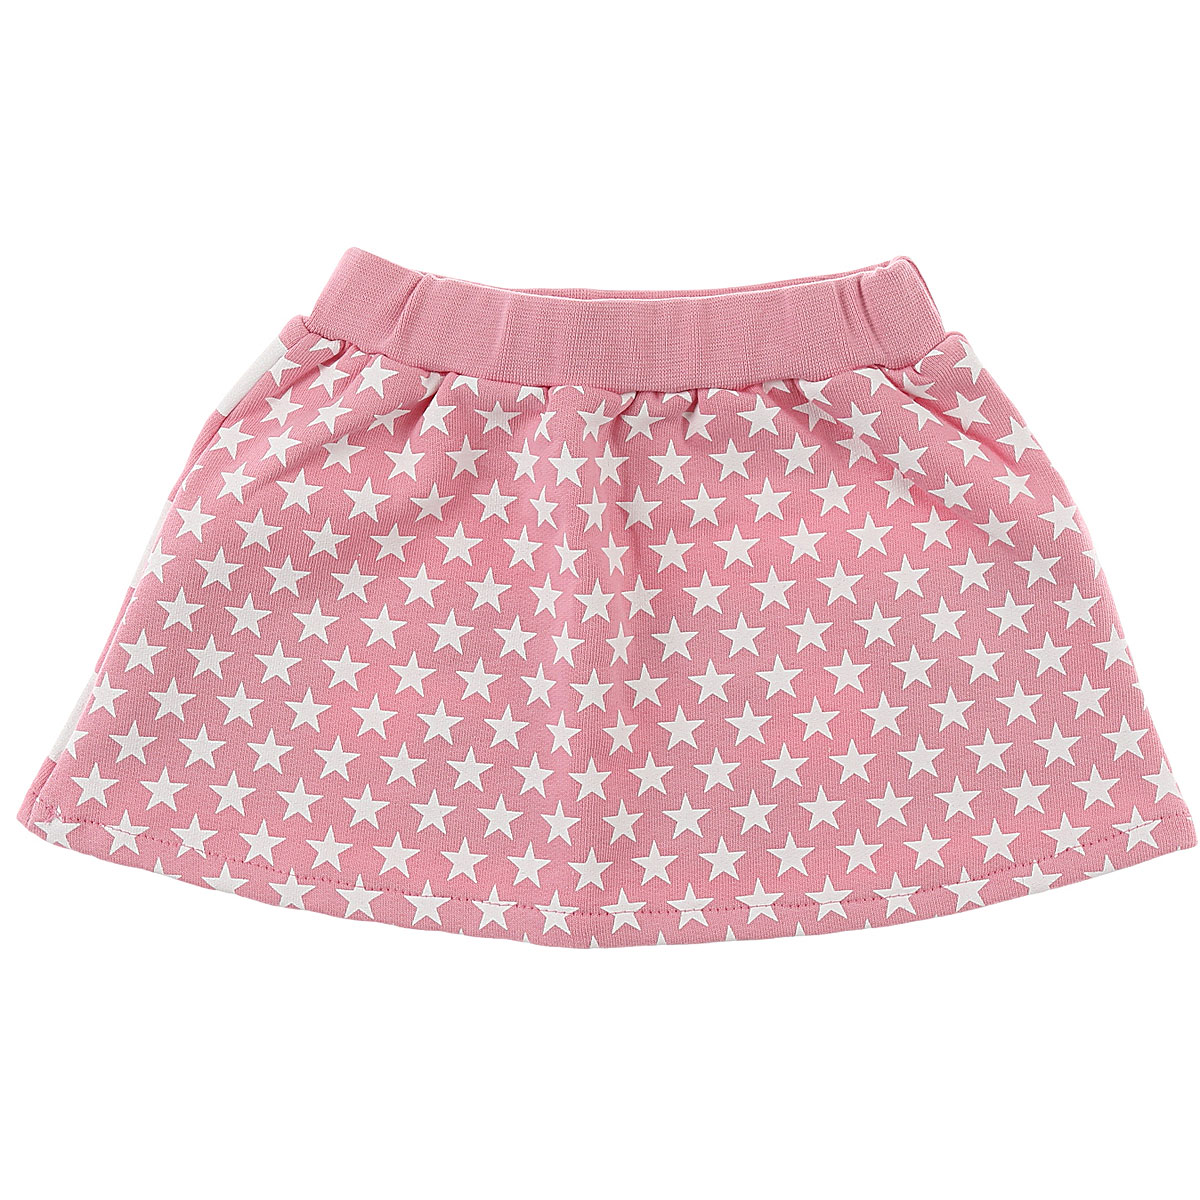 Image of MSGM Baby Skirts for Girls, Pink, Cotton, 2017, 12M 18M 6M 9M